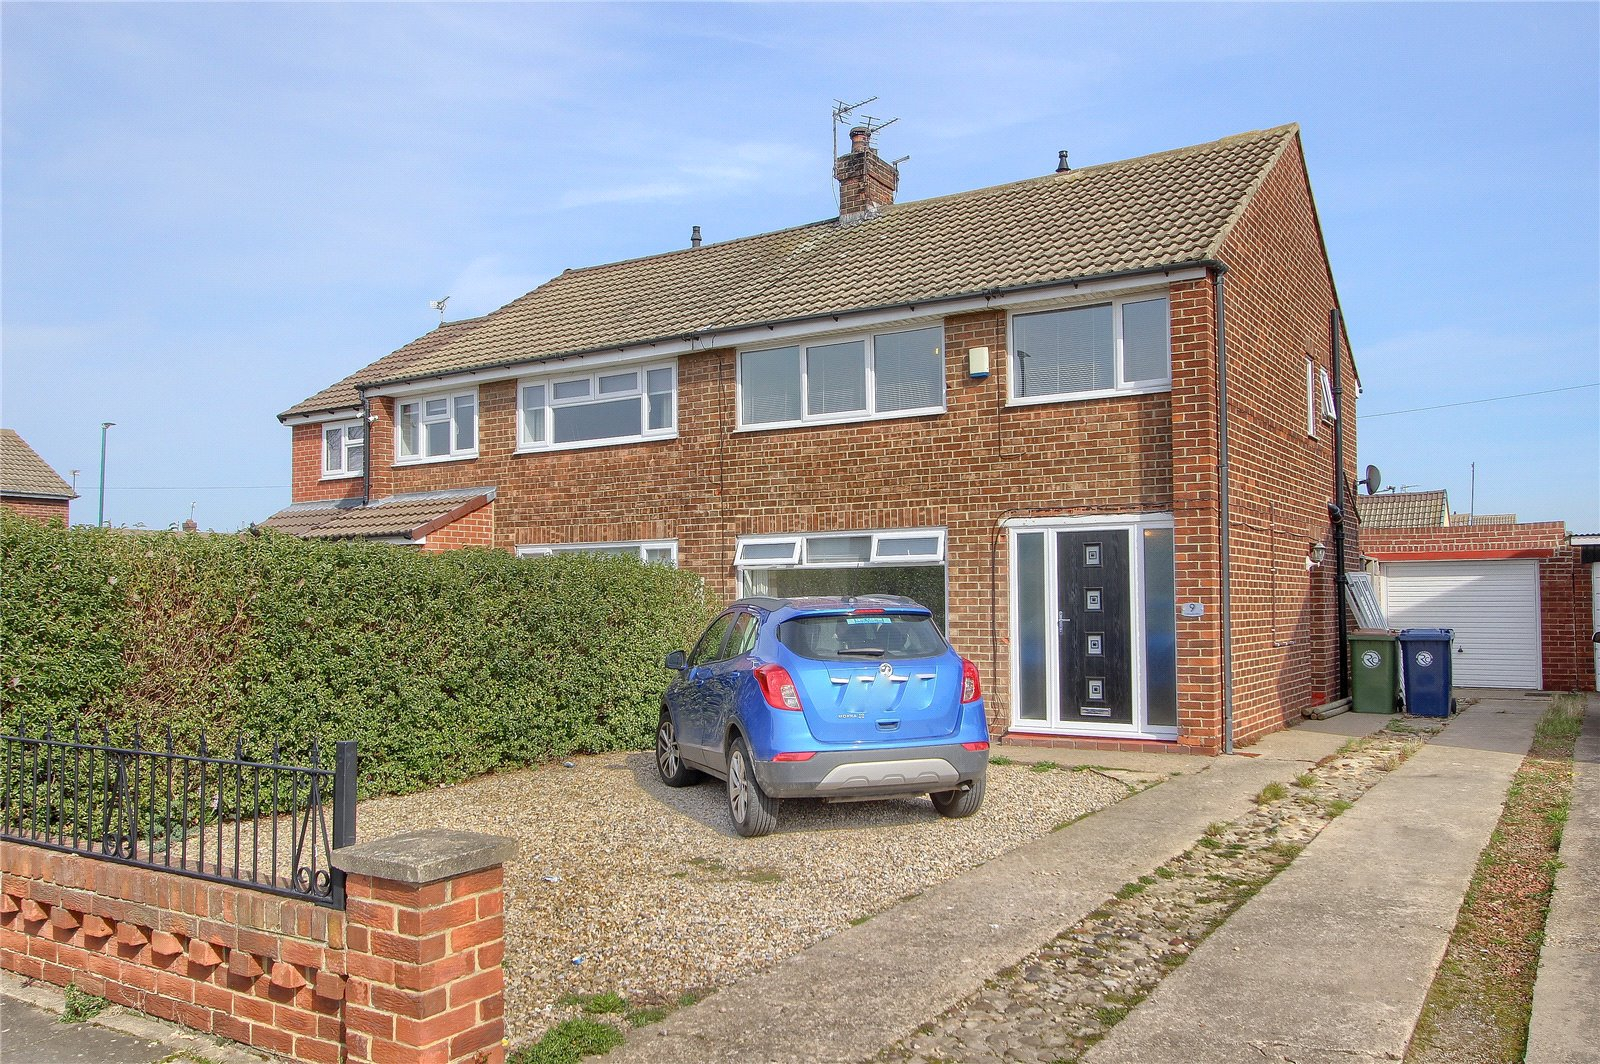 3 bed house for sale in Cotswold Drive, Redcar 1